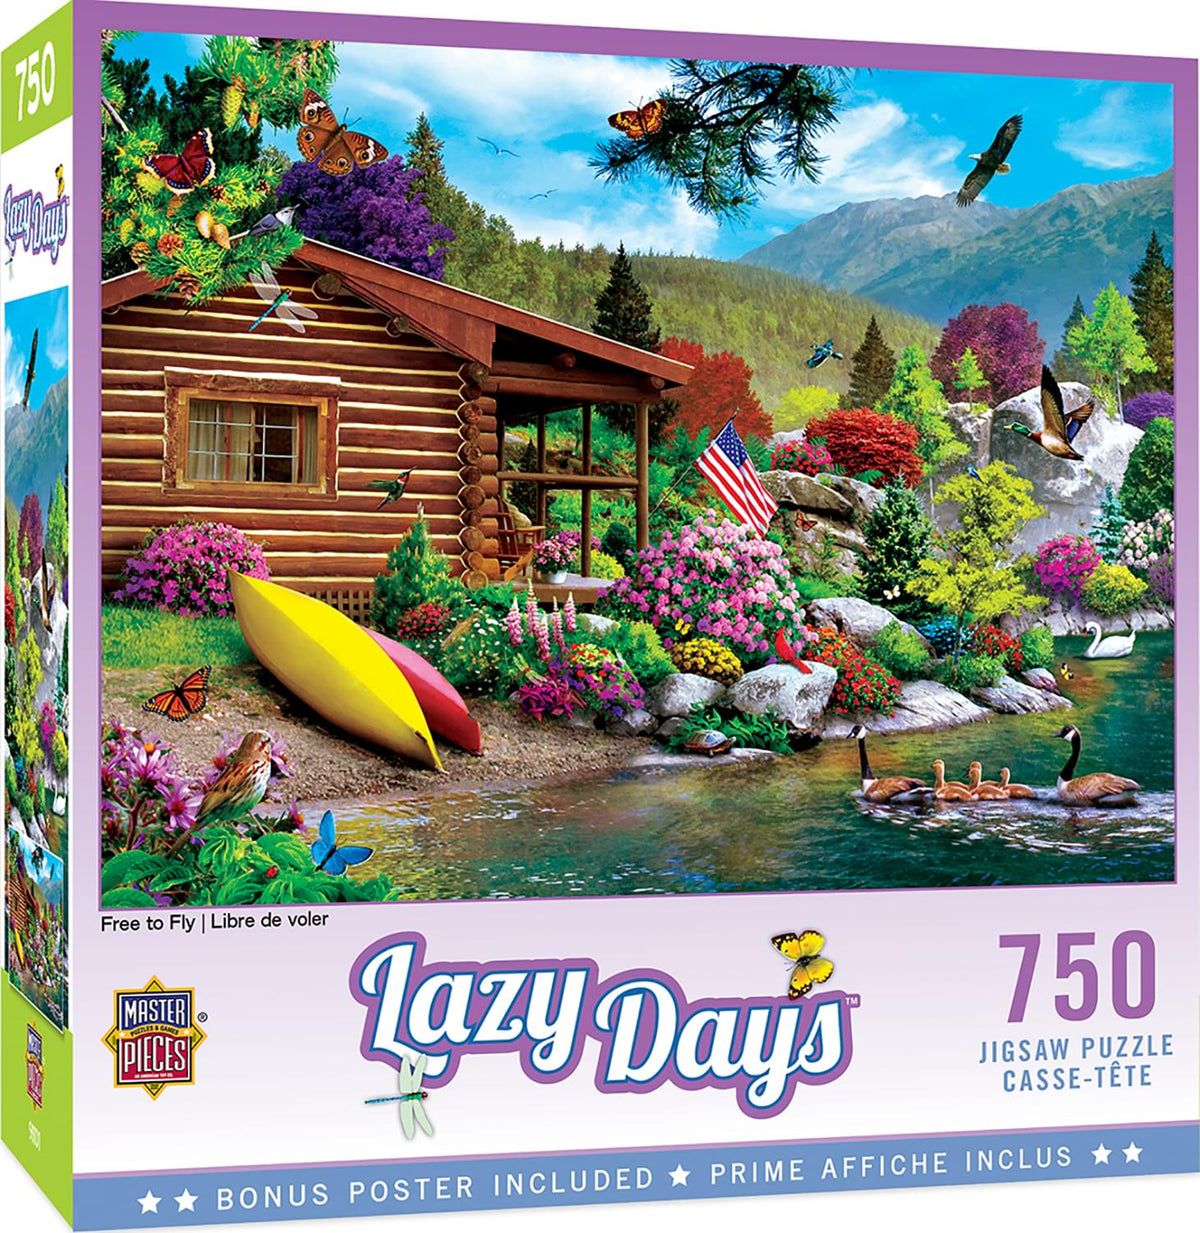 Free to Fly 750 Piece Jigsaw Puzzle